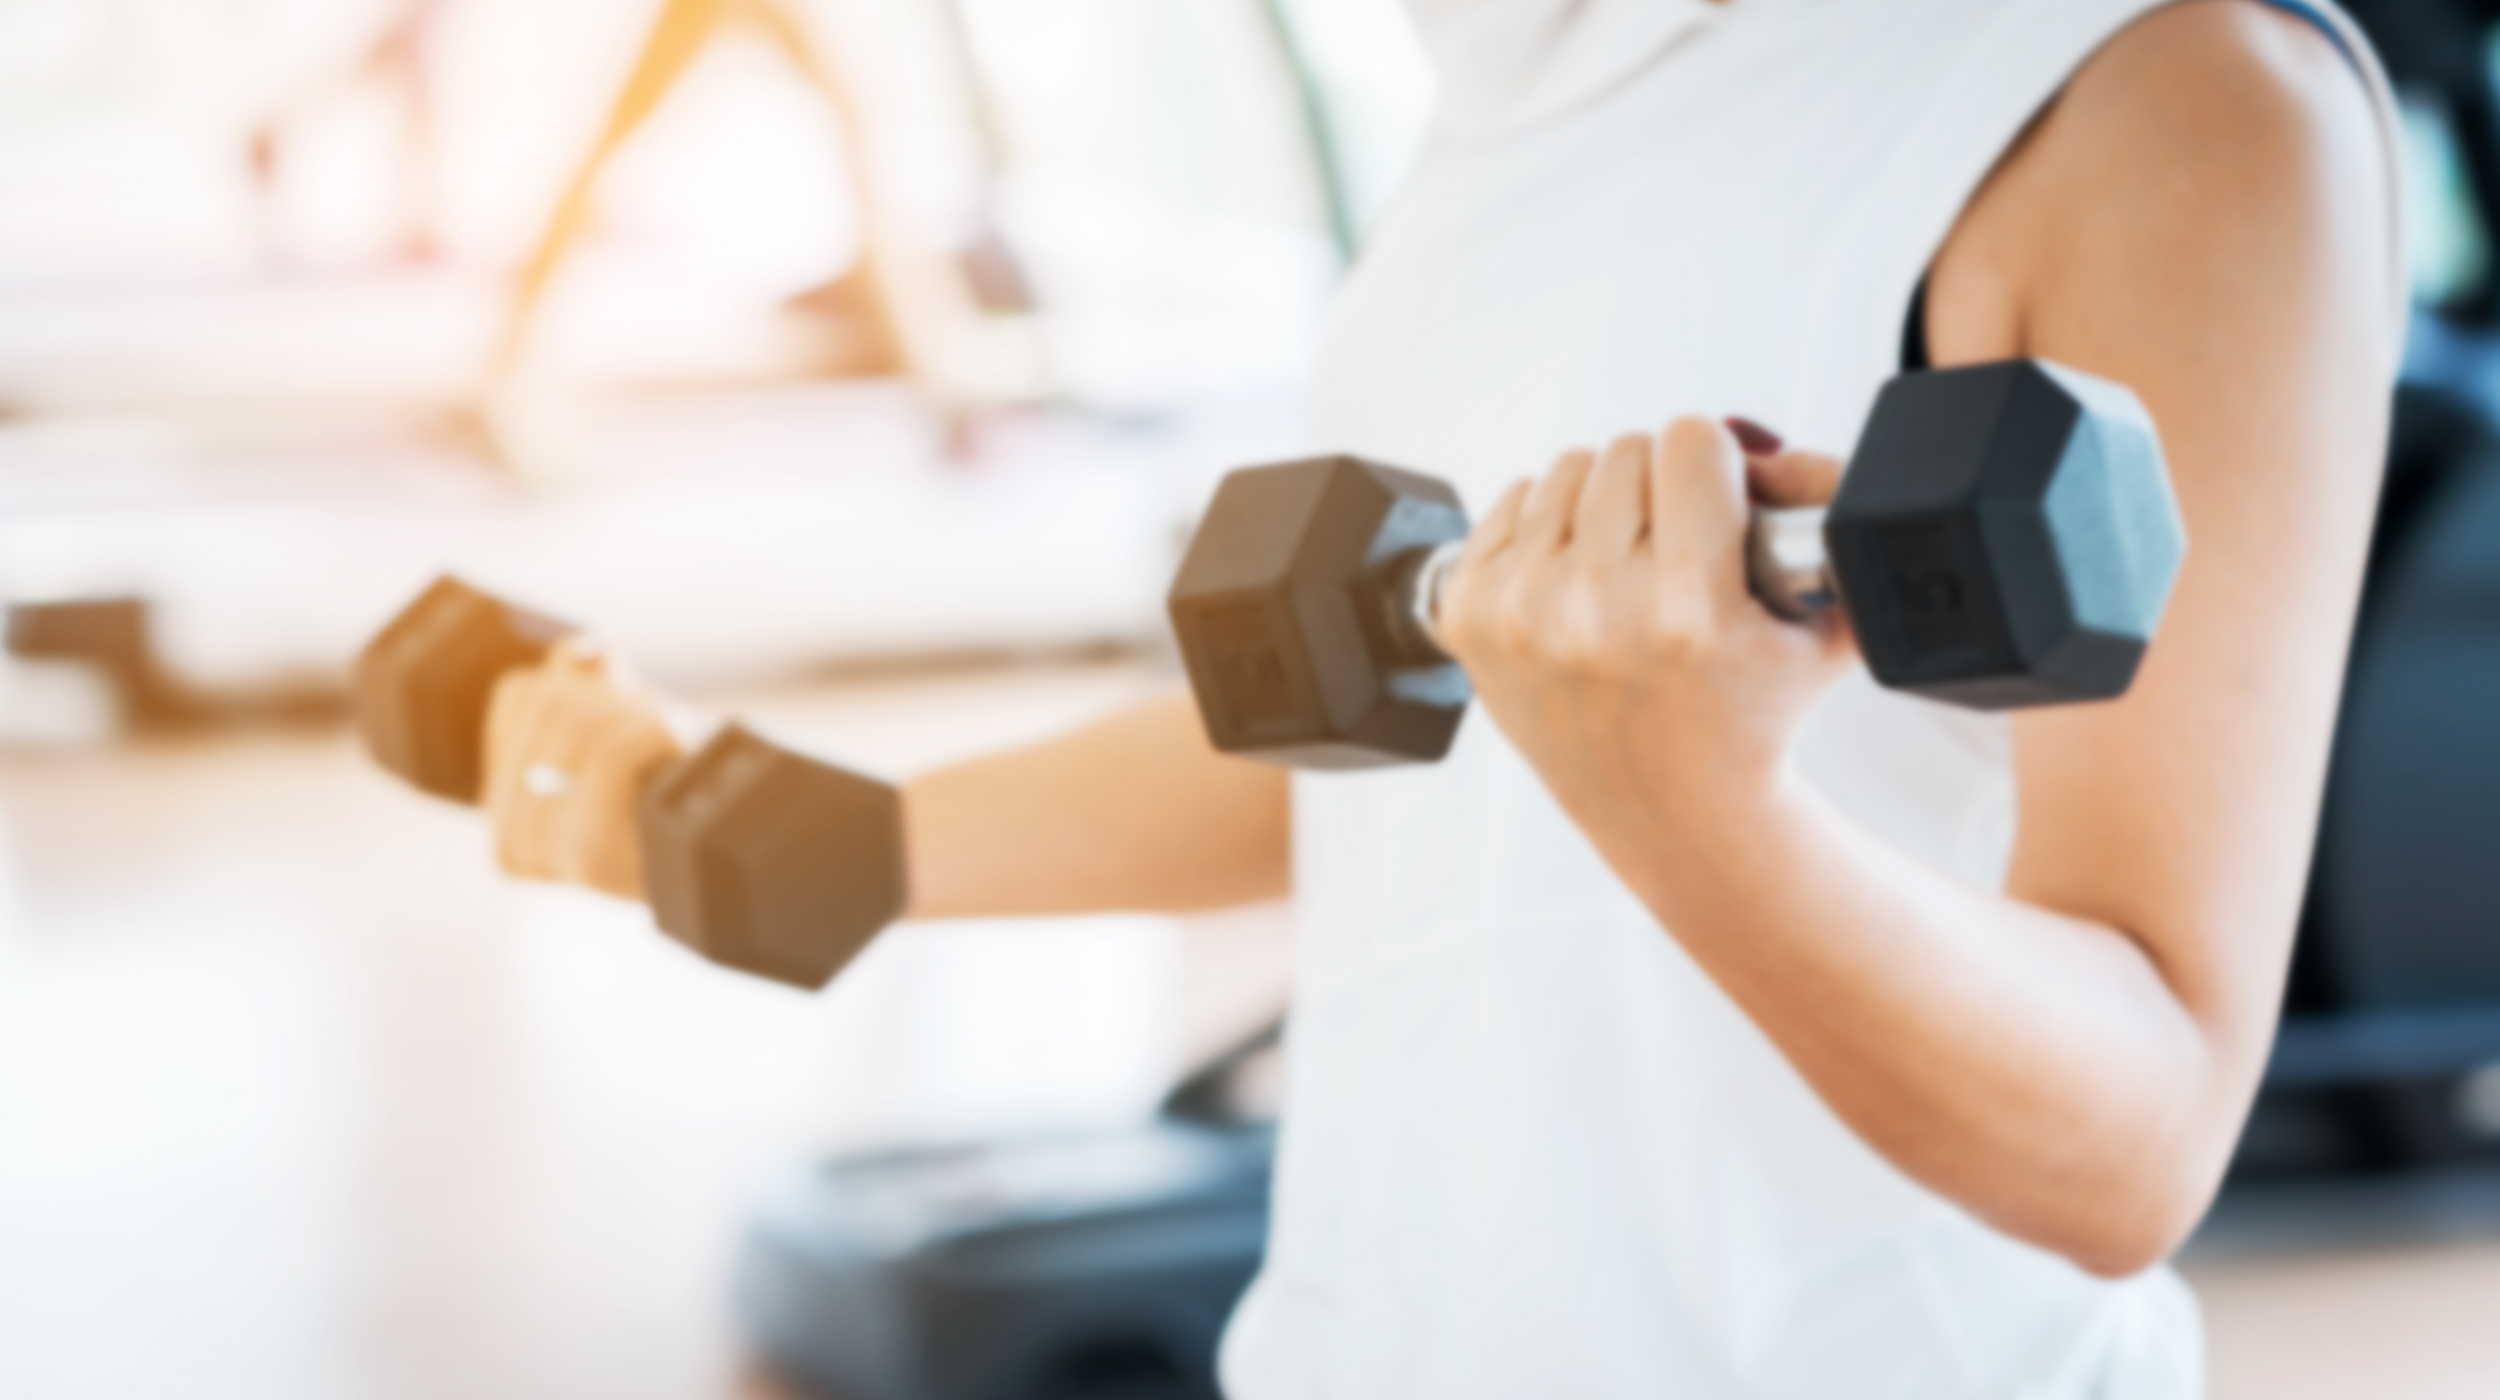 Be Smart With Your Resistance Training While Recovering from a Serious Injury